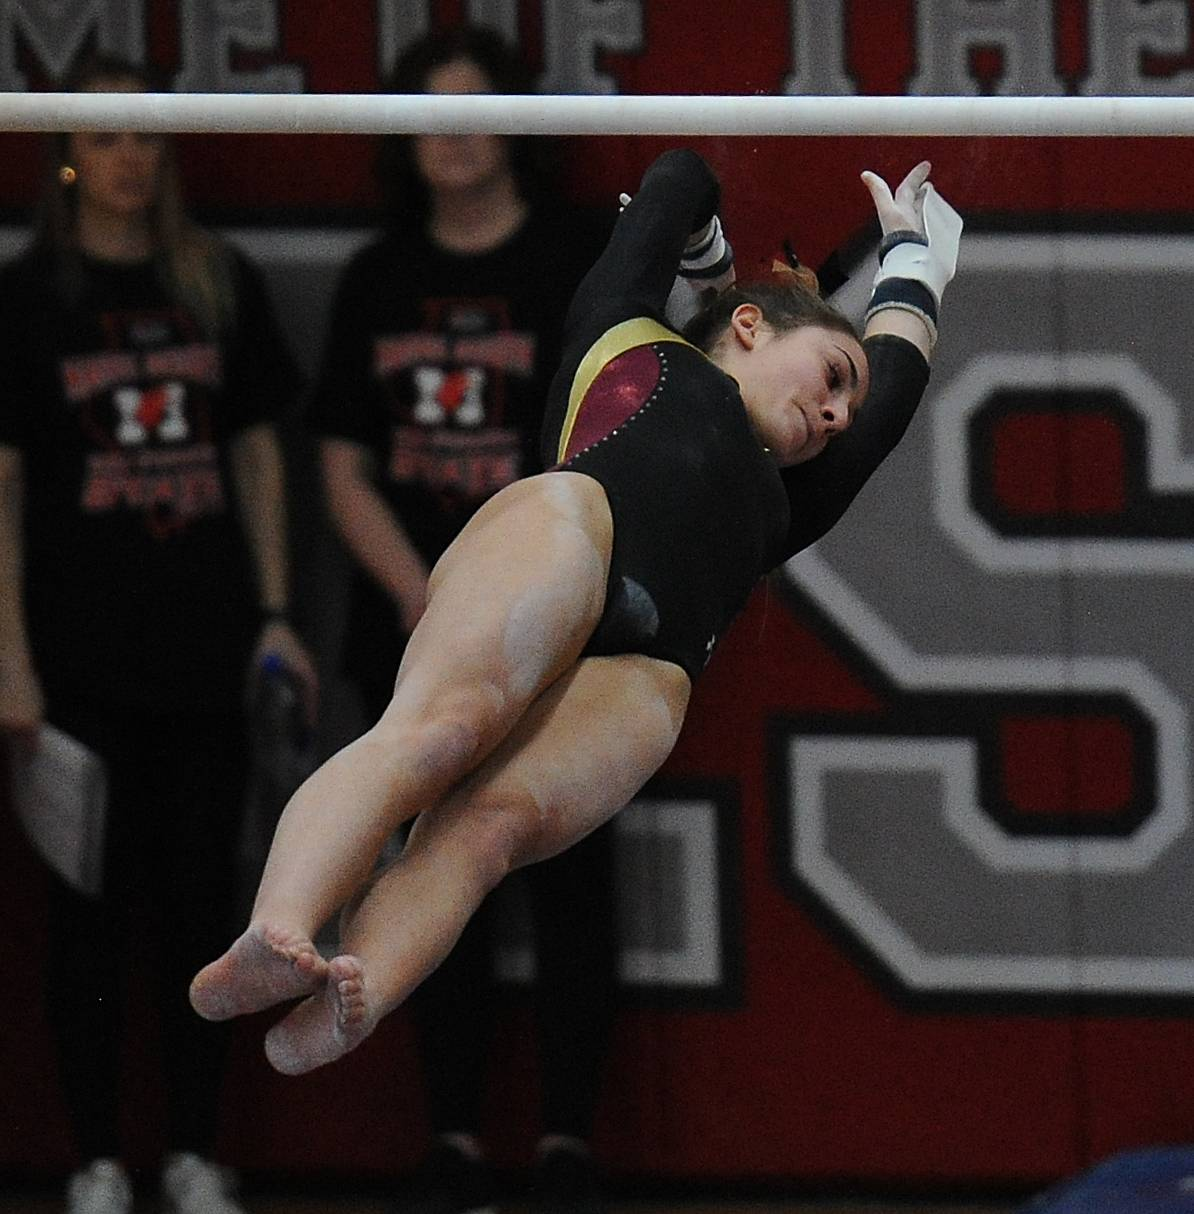 Schaumburg's Alexis Rothmeyer does her routine on the uneven parallel bars during the IHSA girls gymnastics preliminaries at Palatine High School on Friday.